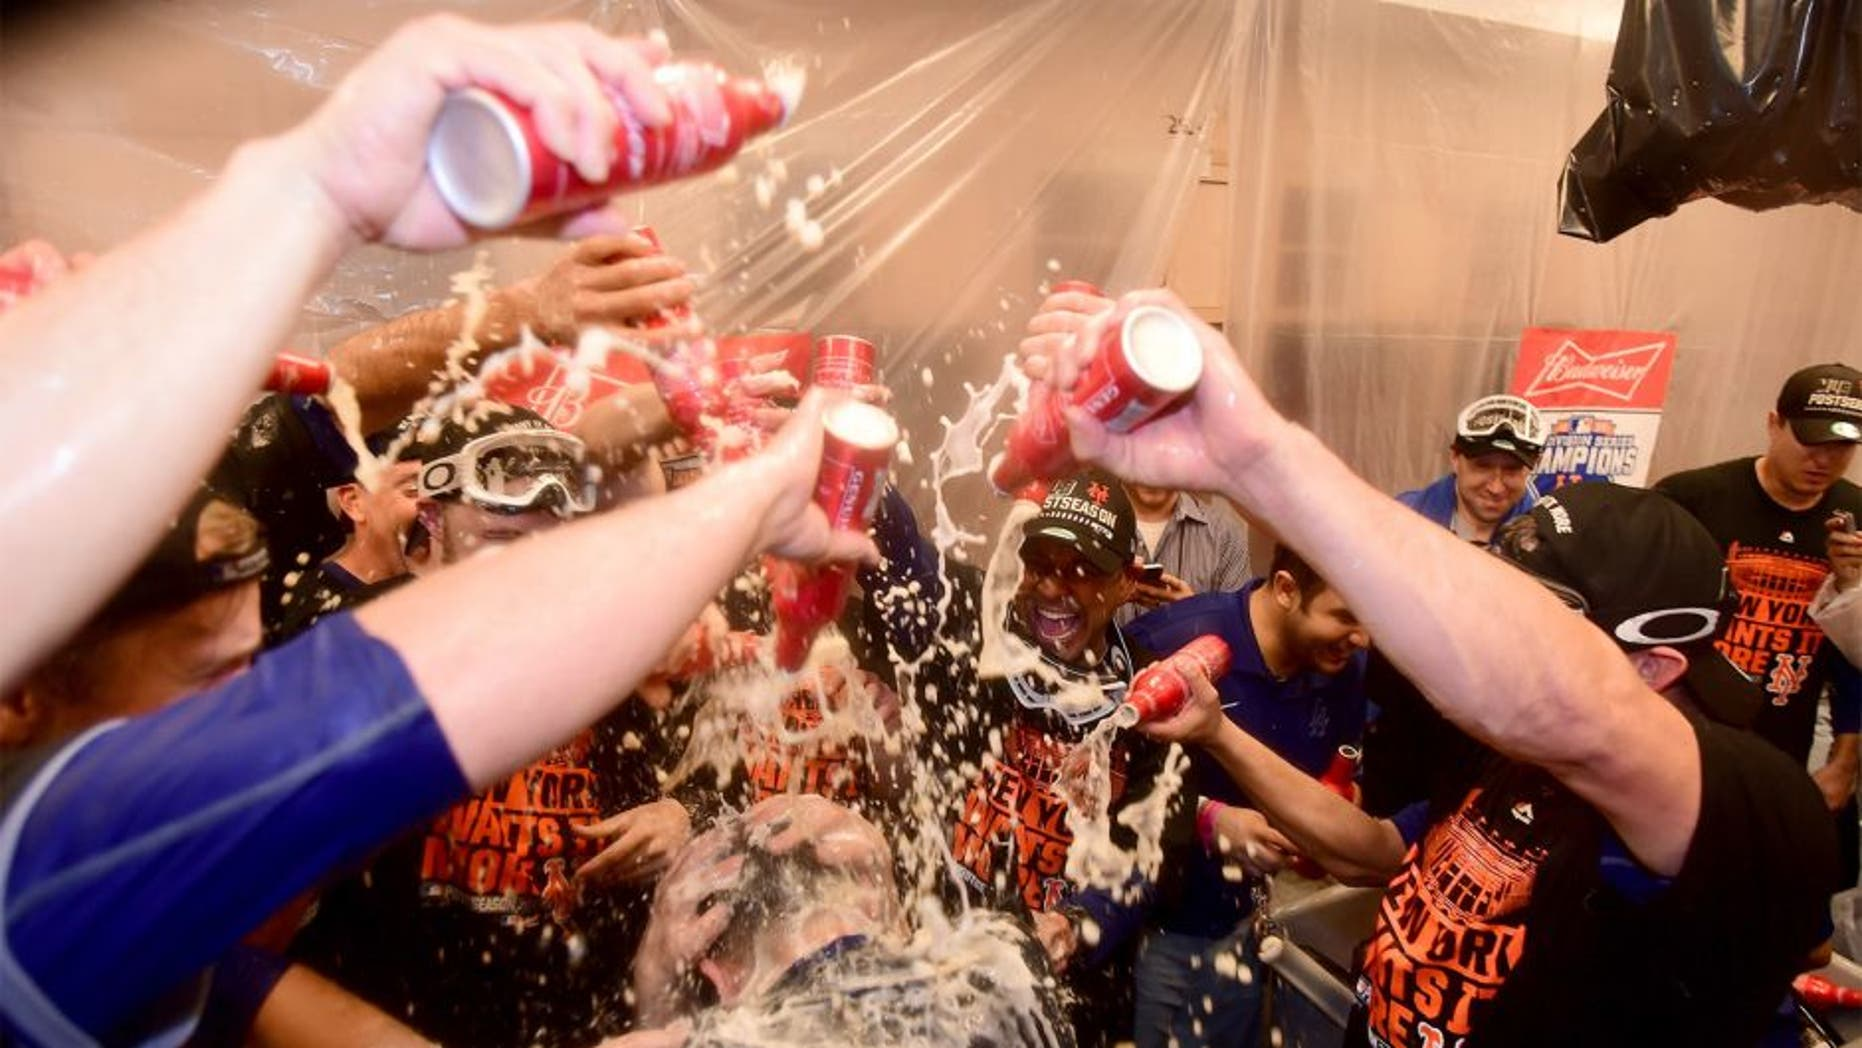 LOS ANGELES, CA - OCTOBER 15: The New York Mets celebrate in the locker room after the Mets 3-2 victory against the Los Angeles Dodgers in game five of the National League Division Series at Dodger Stadium on October 15, 2015 in Los Angeles, California. (Photo by Harry How/Getty Images)